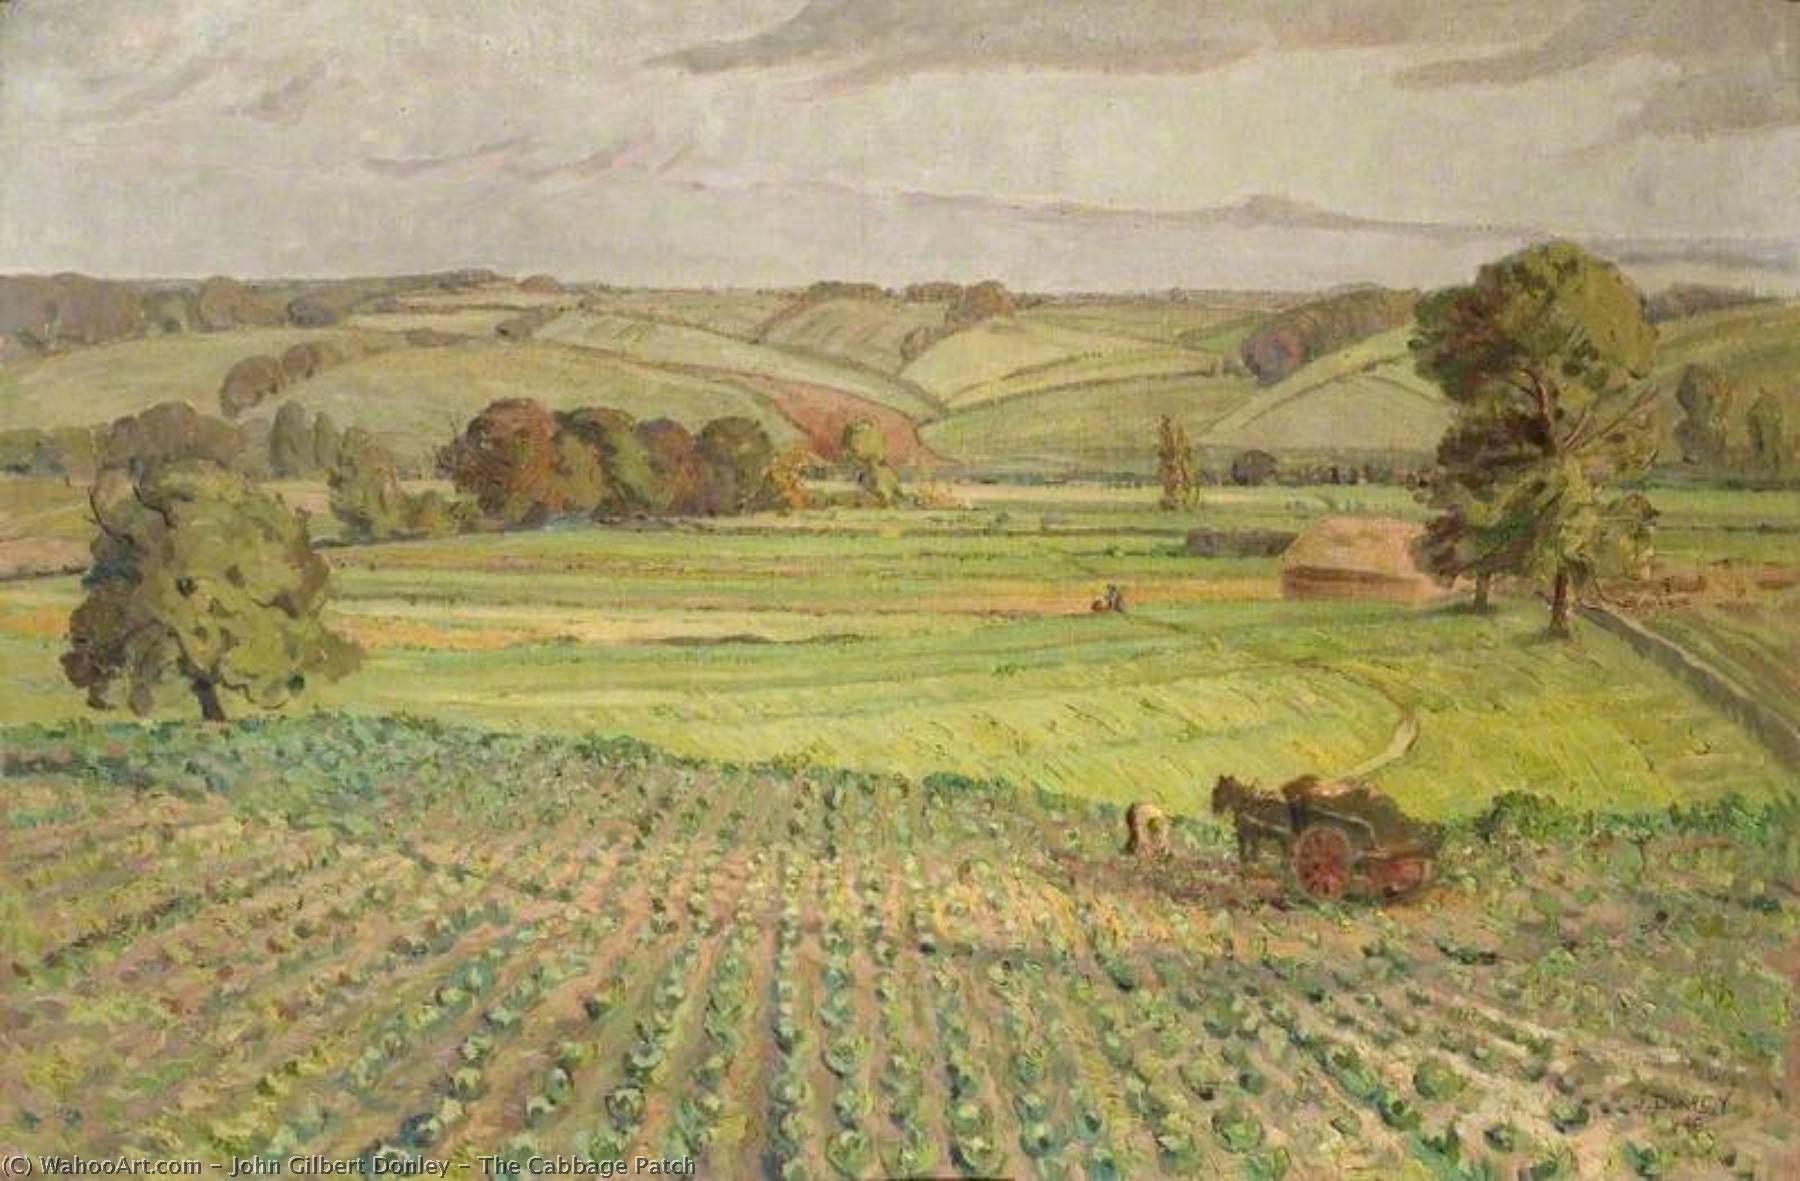 The Cabbage Patch, Oil On Canvas by John Gilbert Donley